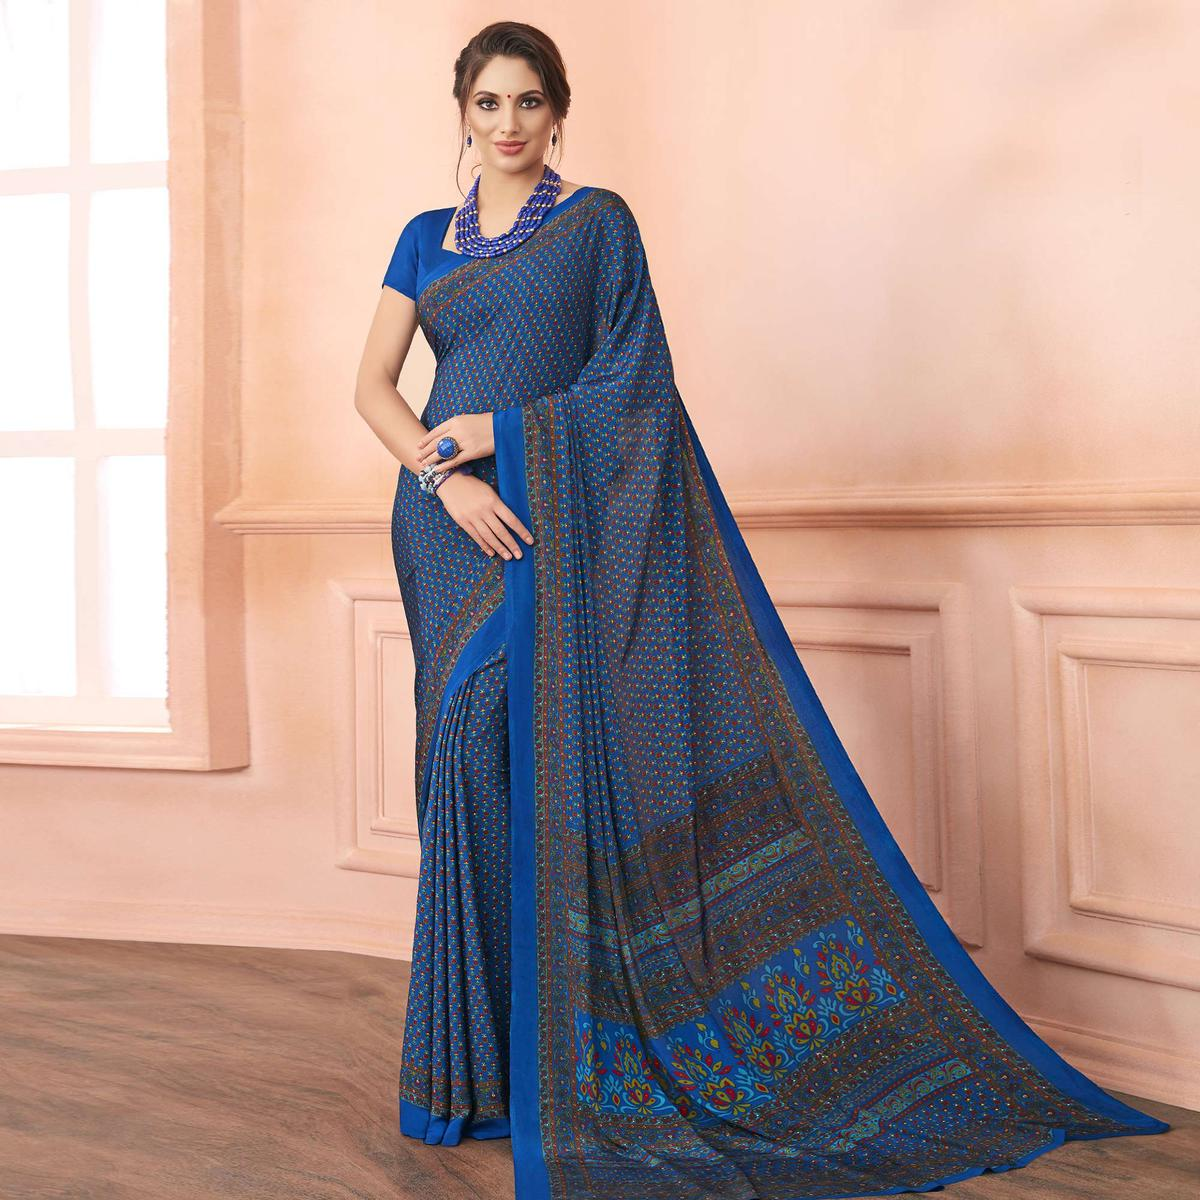 Sophisticated Blue Colored Casual Printed Pure Crepe Saree